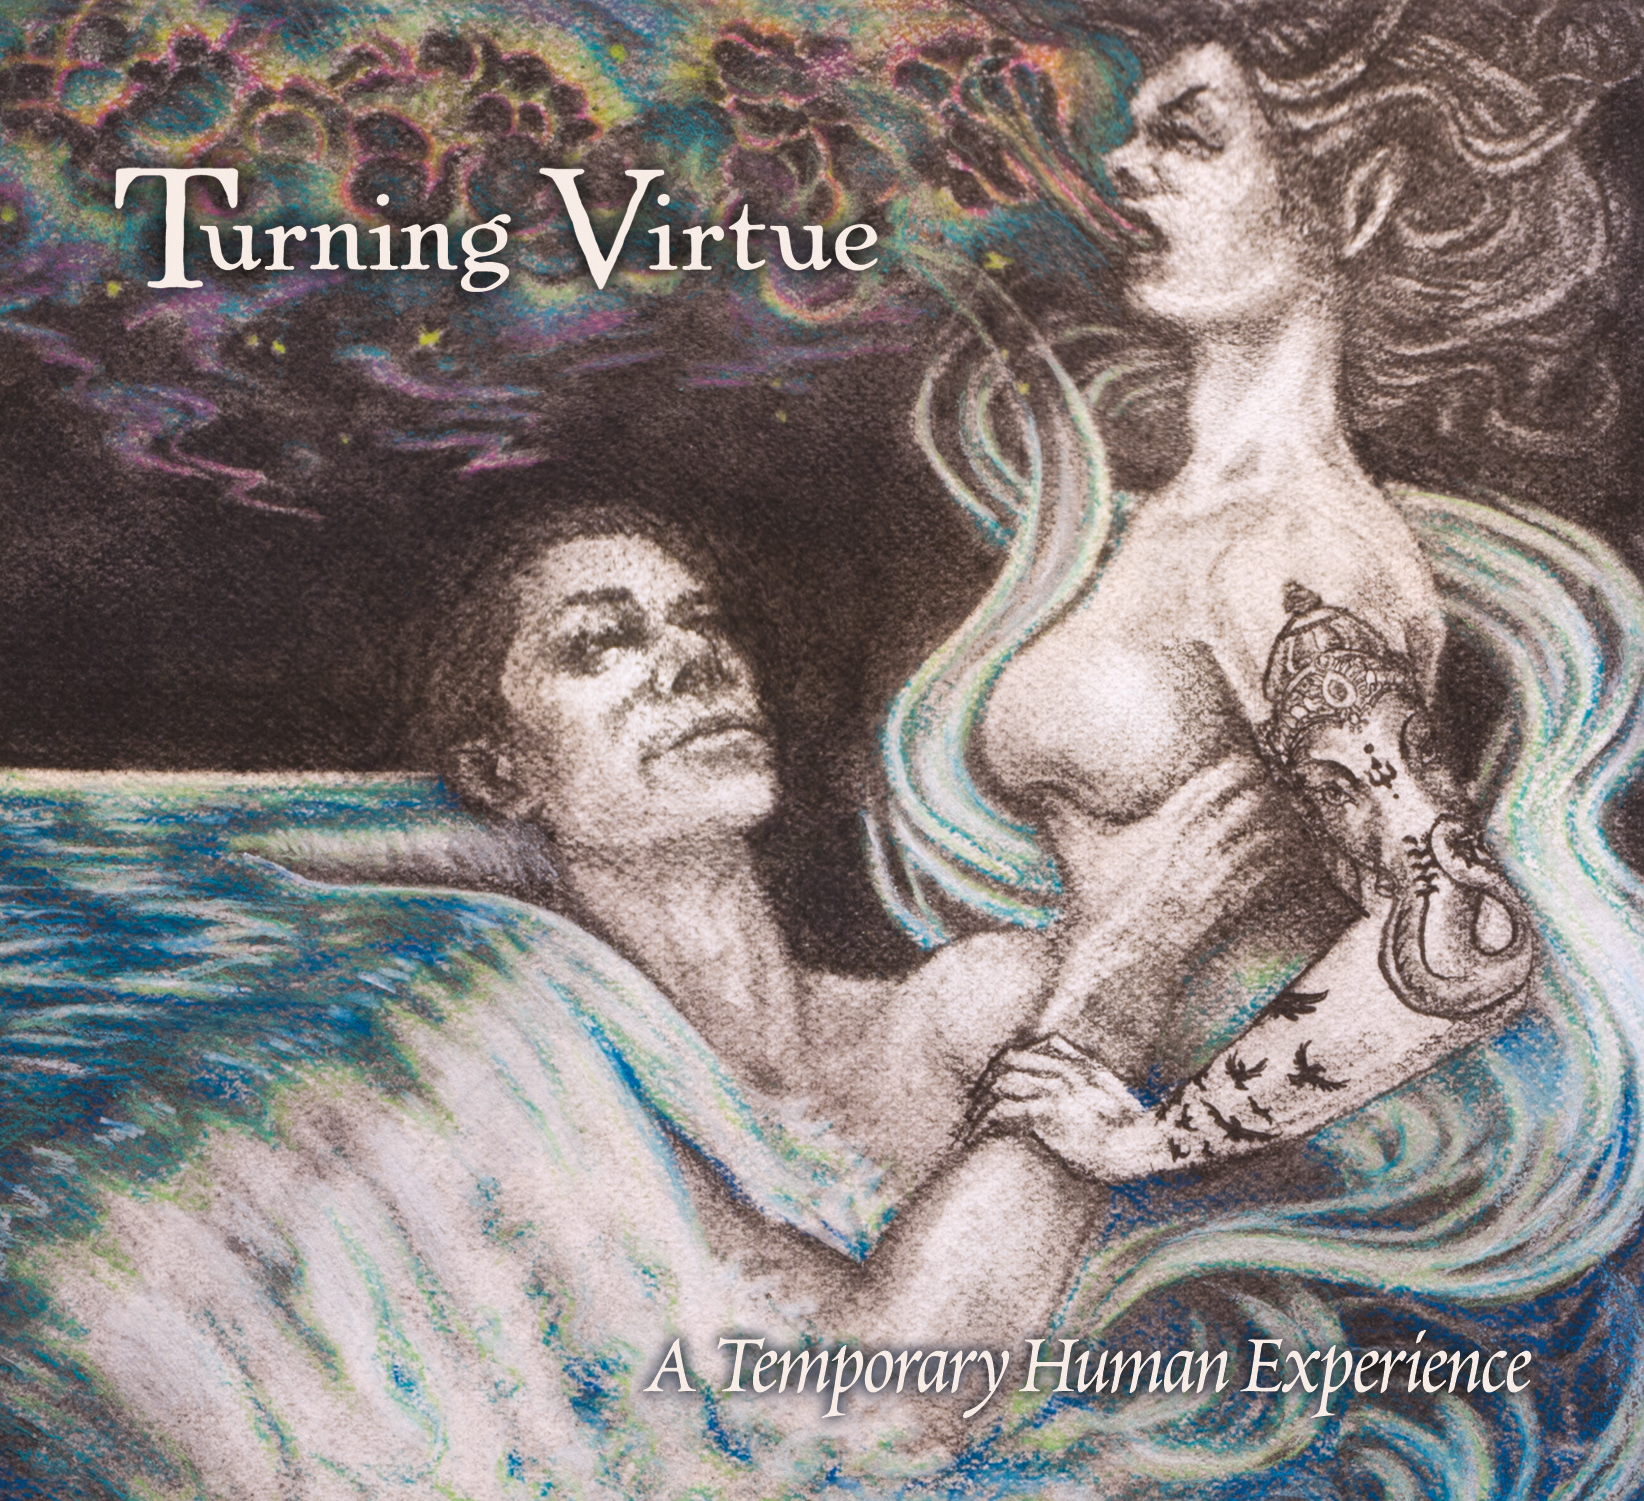 TurningVirtue_ATemporaryHumanExperience_Cover